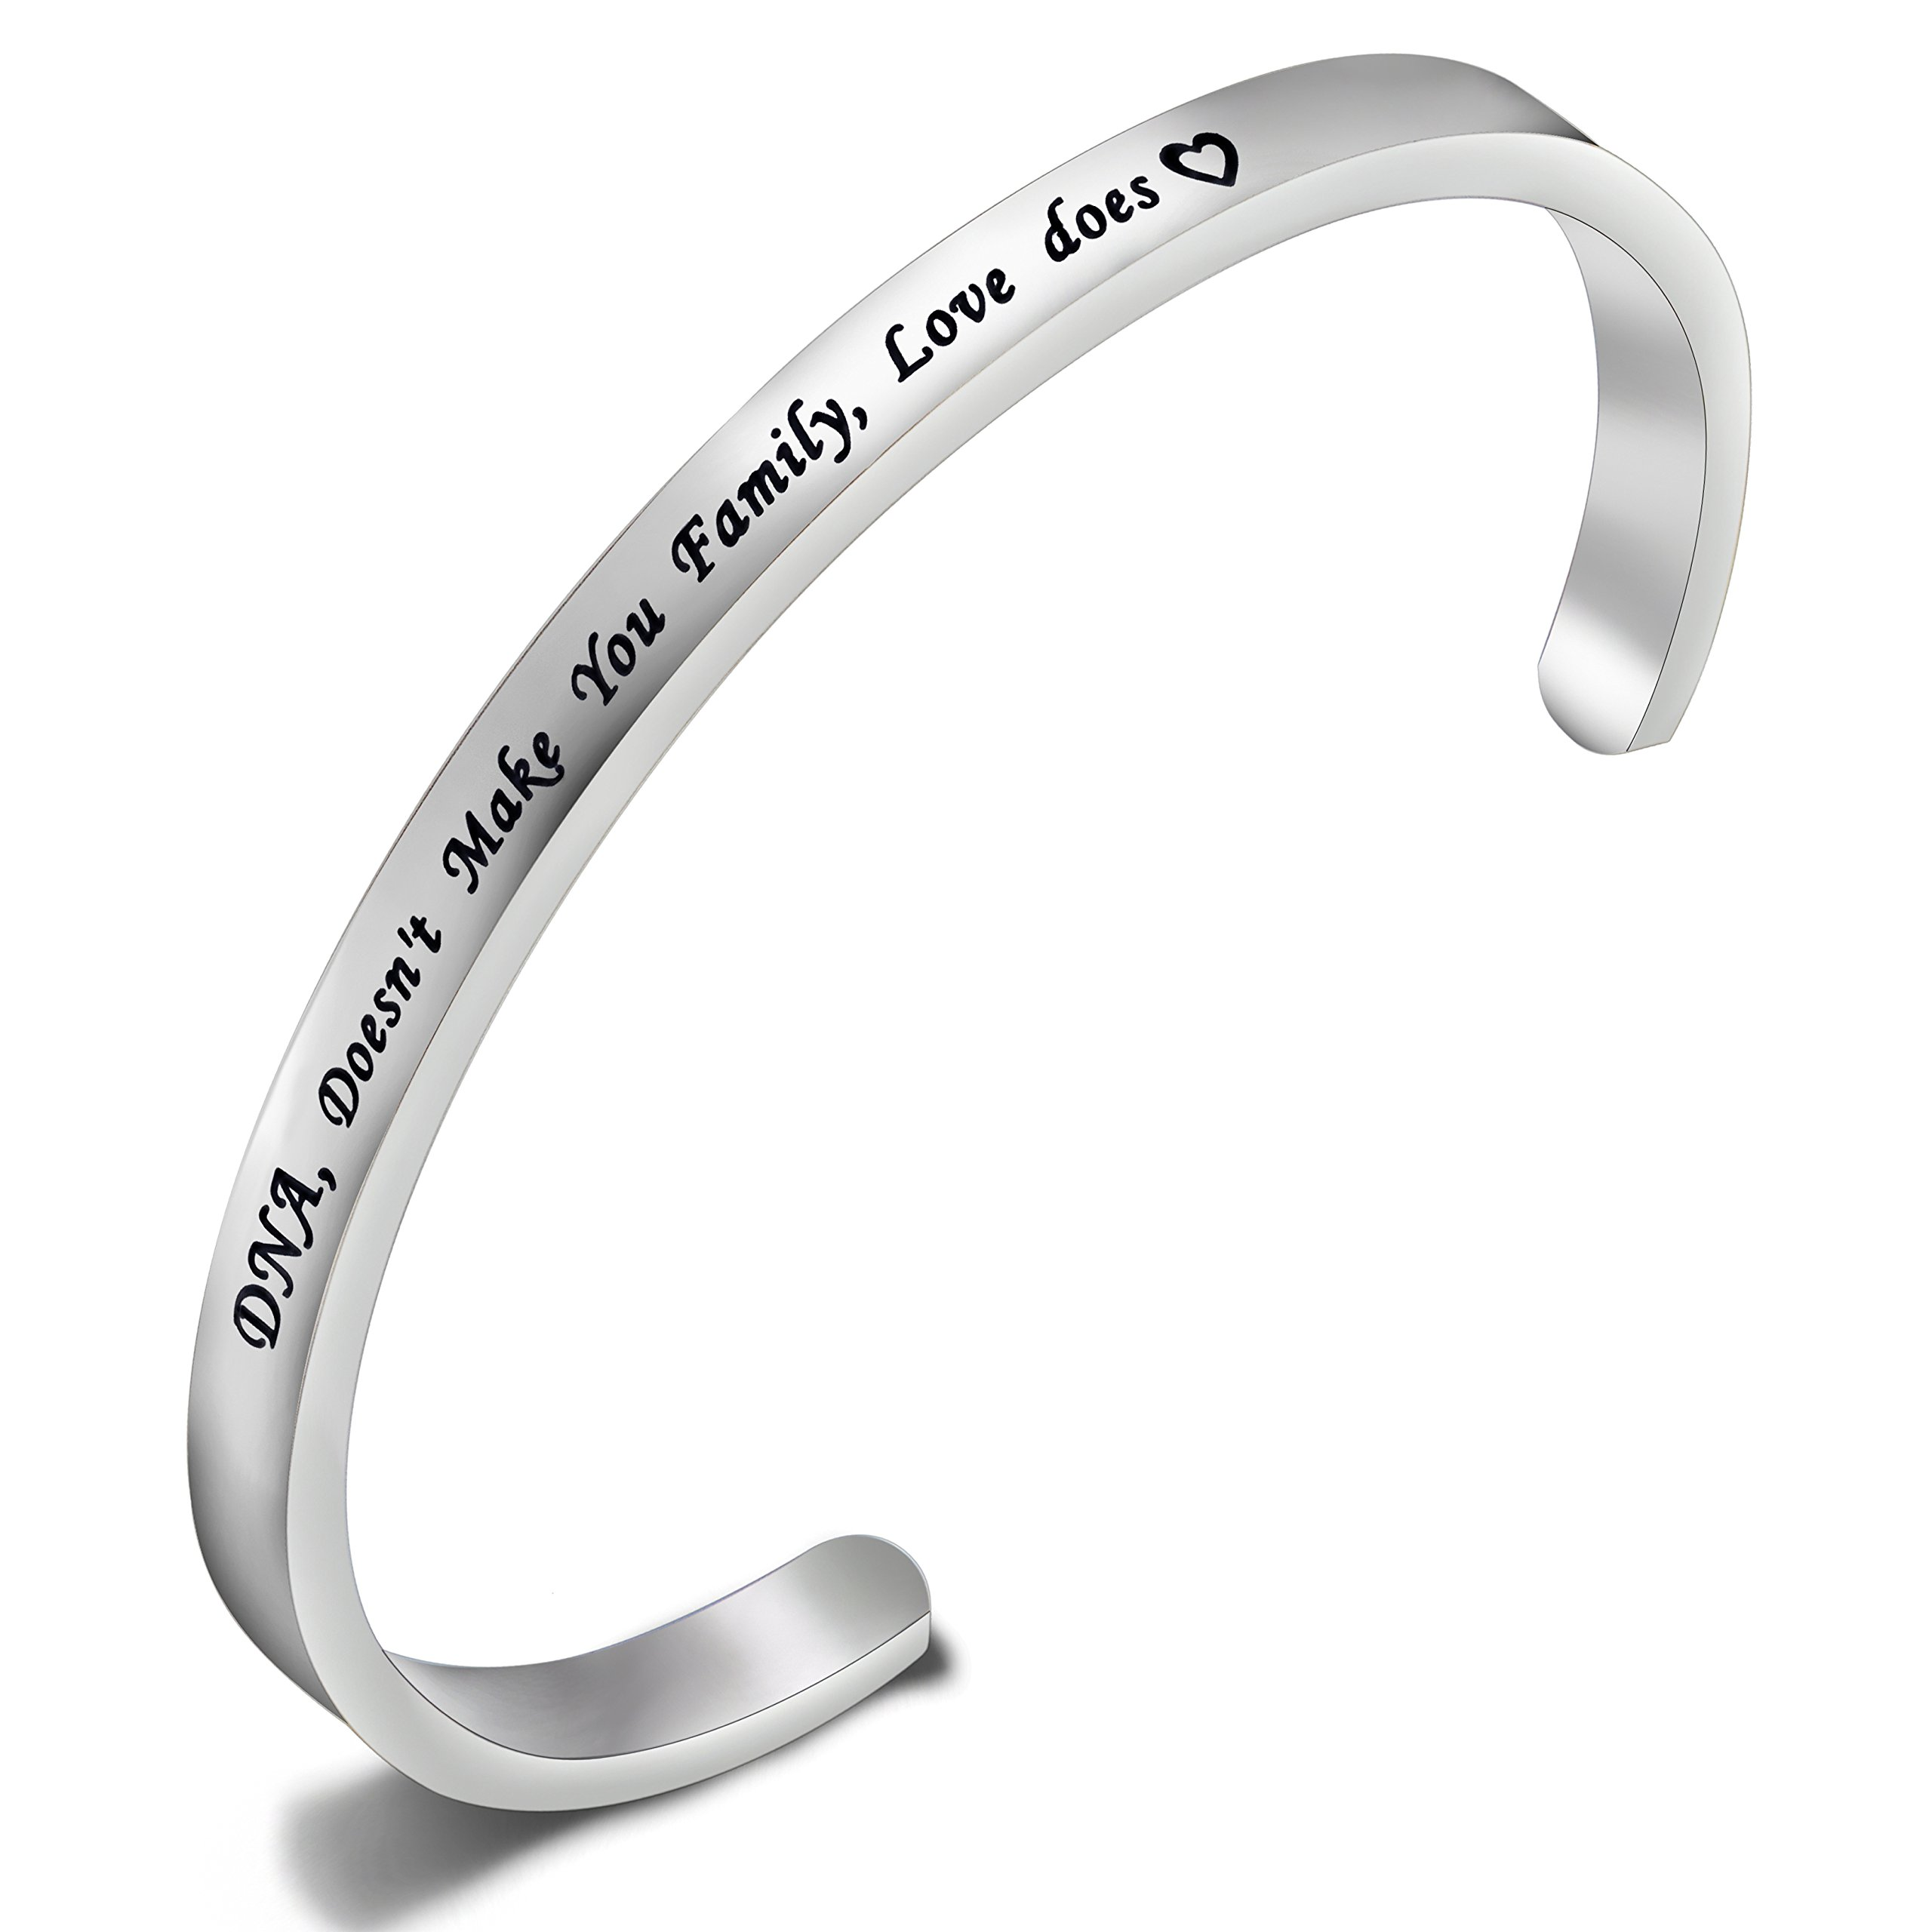 FEELMEM Stepdaughter Bangle DNA Doesn't Make You Family Love Does Cuff Bangle Bracelet,Family Jewelry Gift for Adopted Child Step Child Stepdaughter (DNA Doesn't.-Silver)